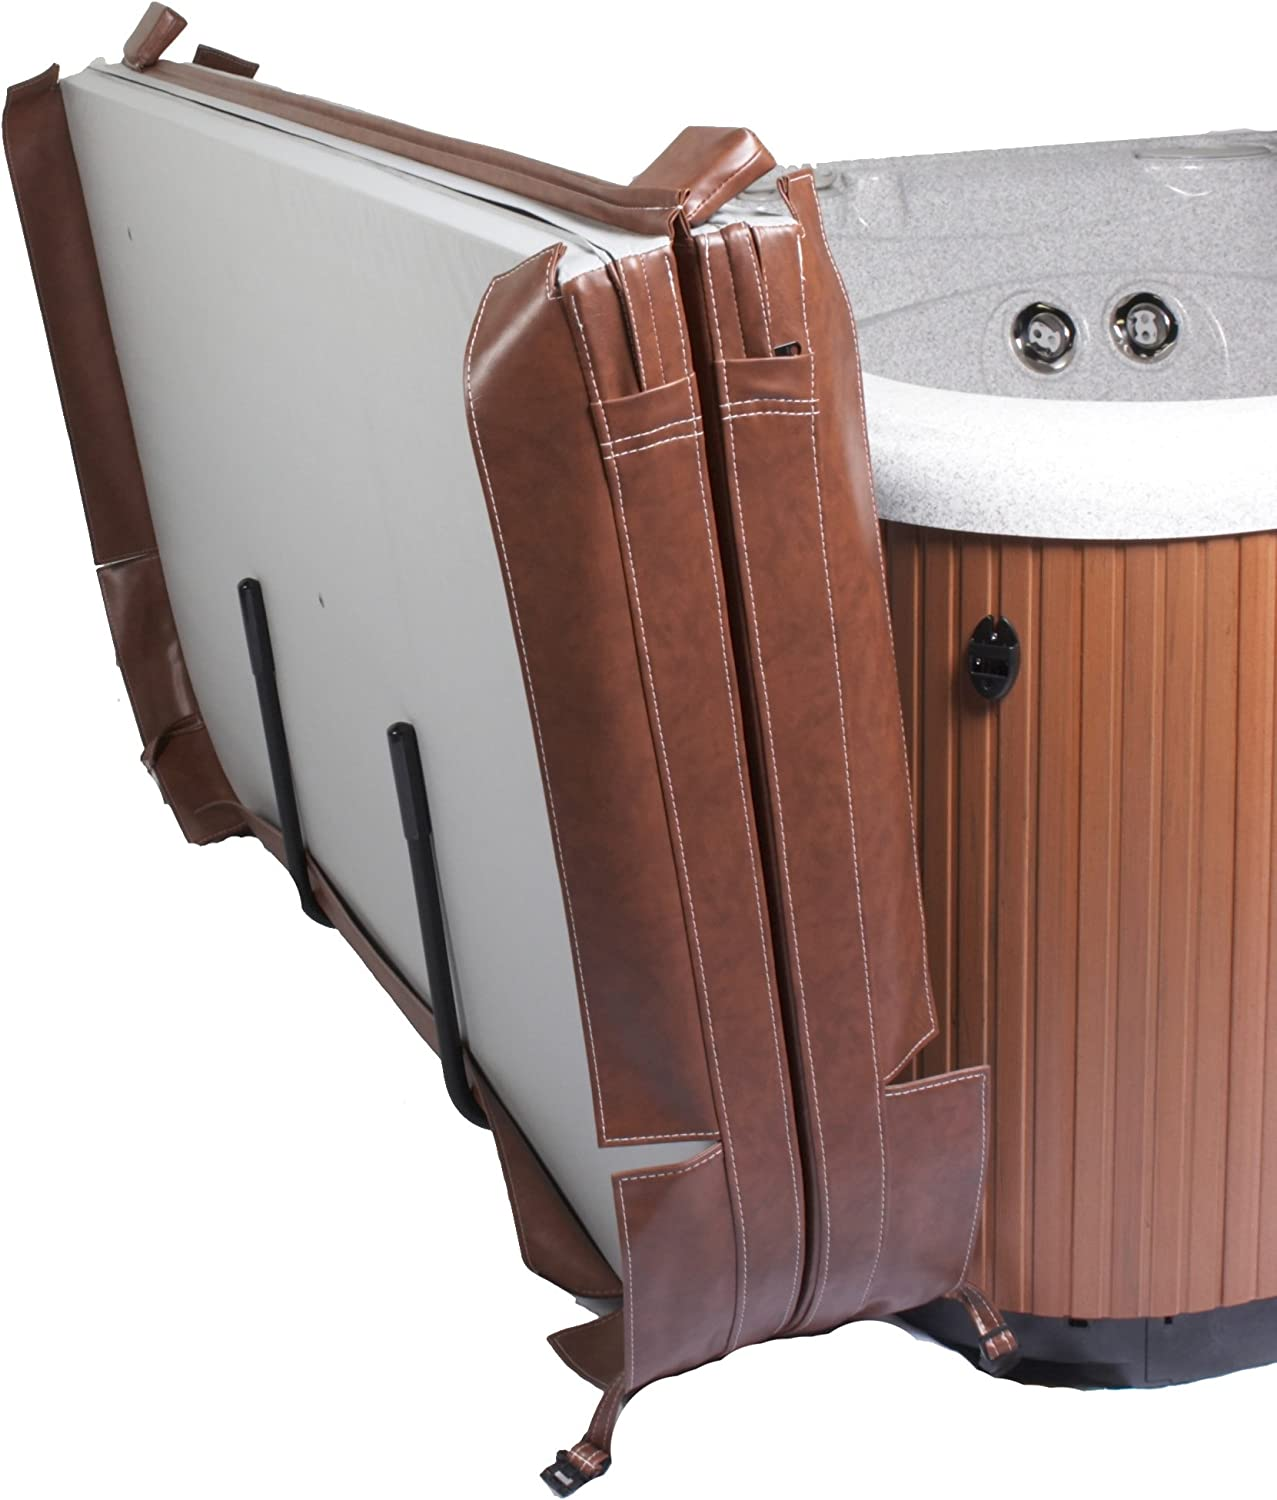 Cover Valet NP509 Spa Cover Lift and Caddy,Black: Garden & Outdoor